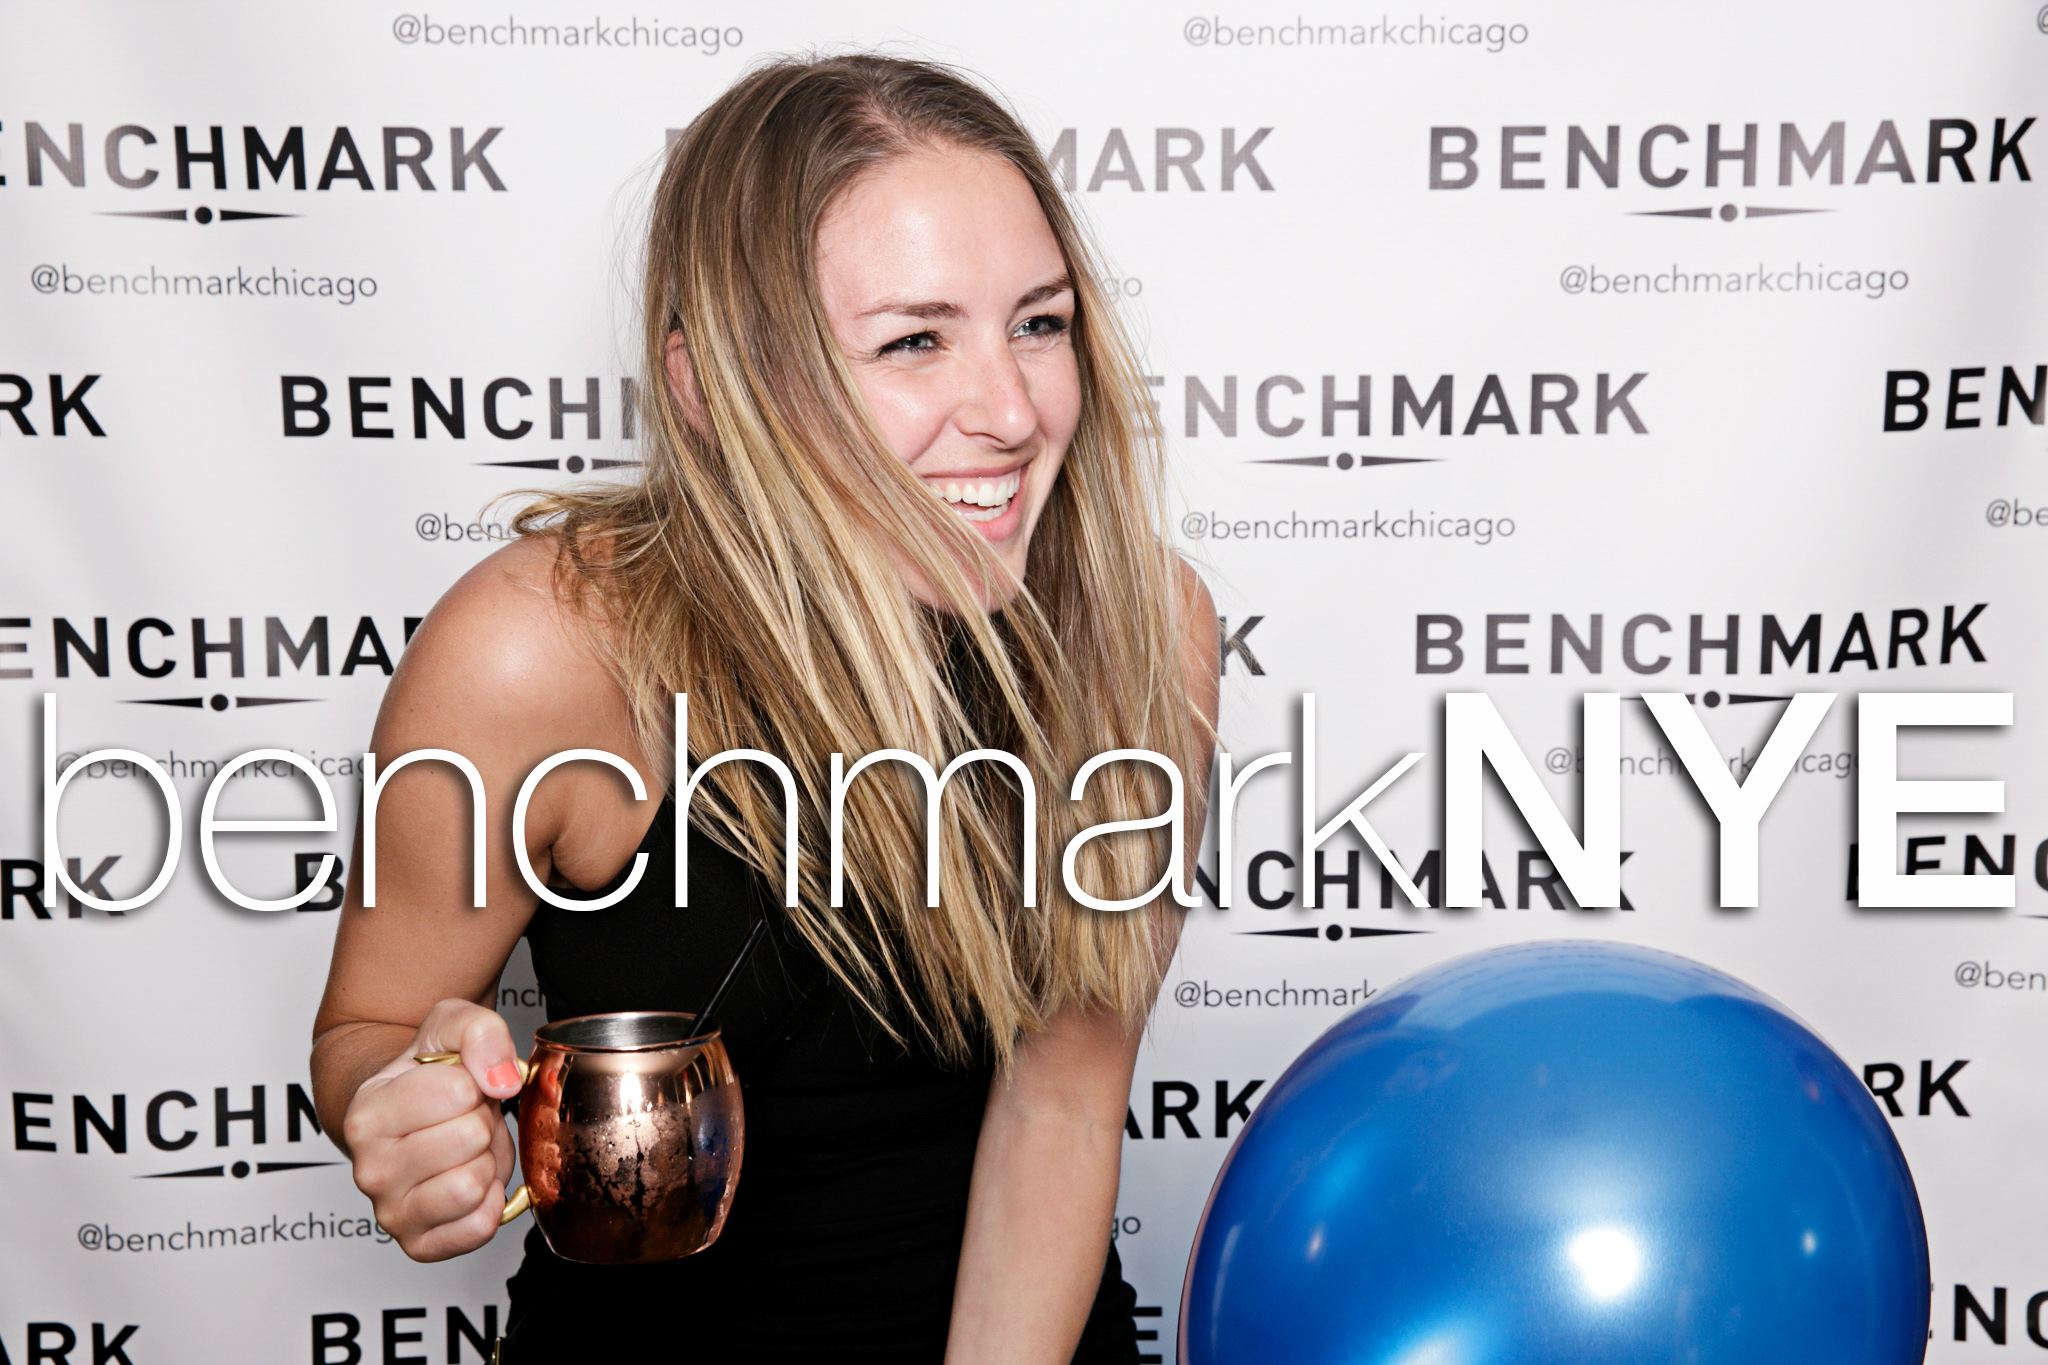 New Year's Eve at Benchmark